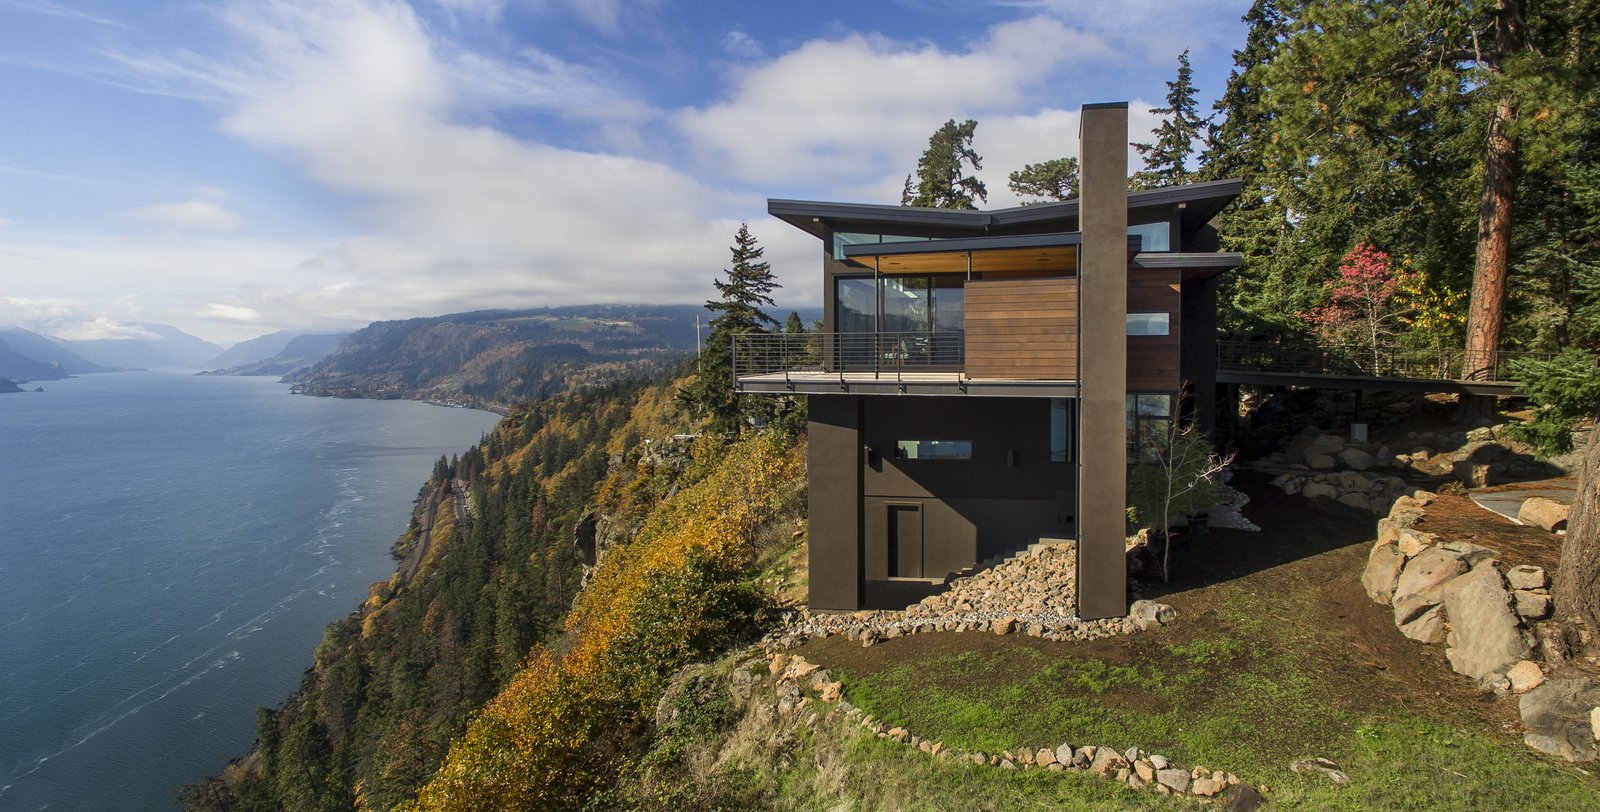 photo 4 of 9 in 9 stunning examples of homes built on and around cliffs from cliff house dwell. Black Bedroom Furniture Sets. Home Design Ideas